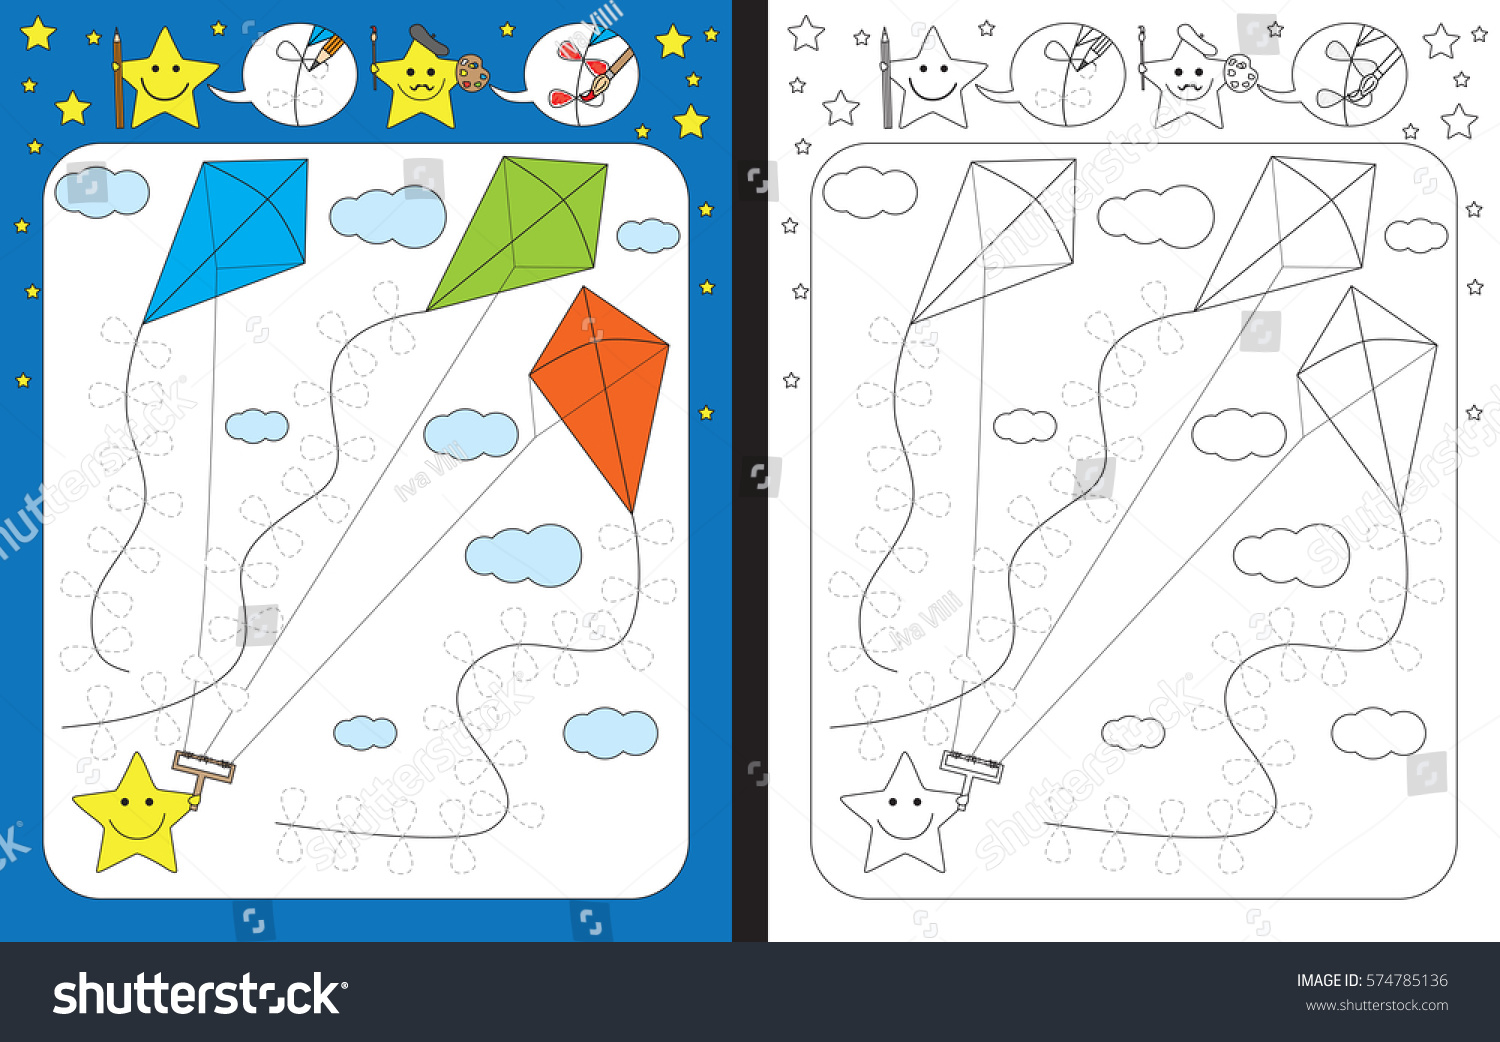 Kite Preschool Matching Worksheet Kite Best Free Printable Worksheets